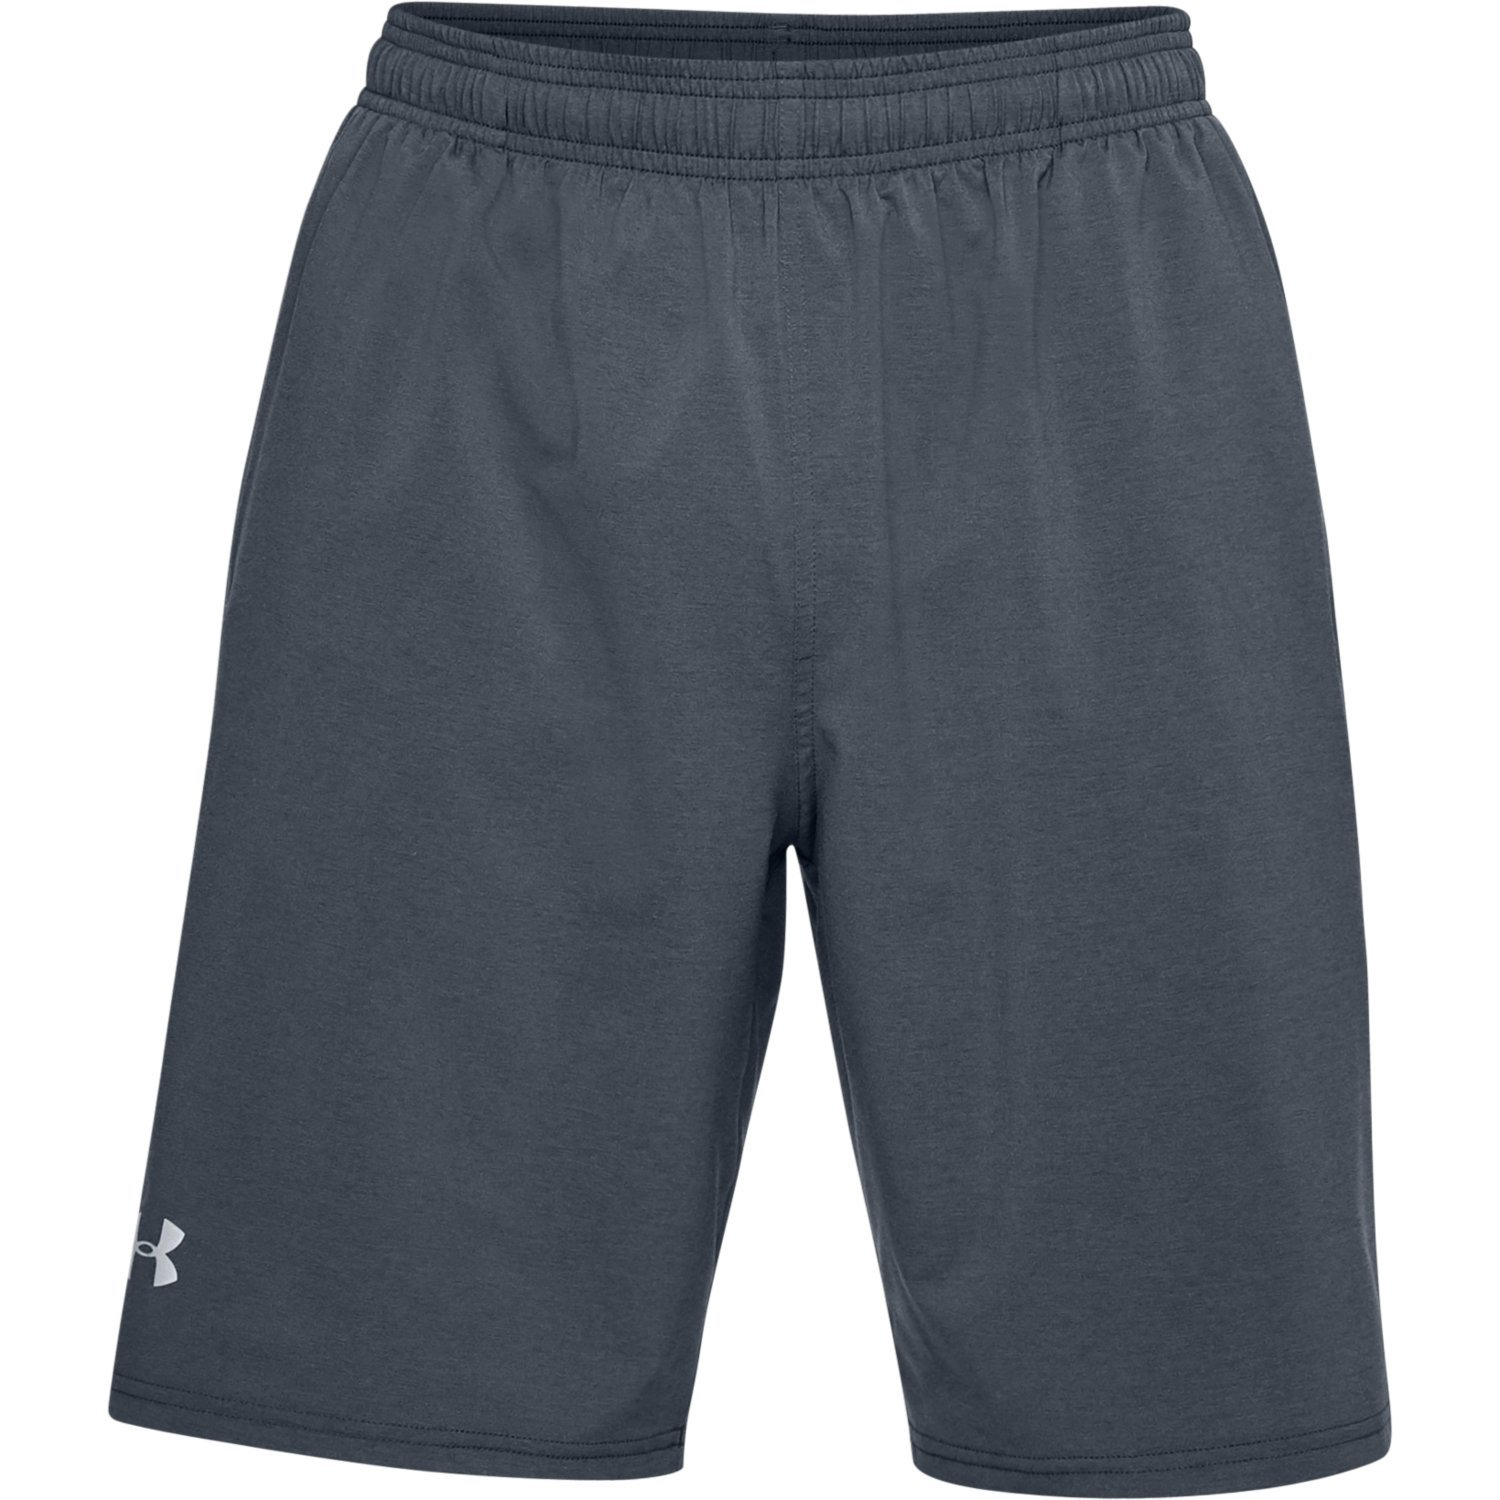 Under Armour Men's Launch 9'' Shorts, Black Medium Heather/Reflective, Small